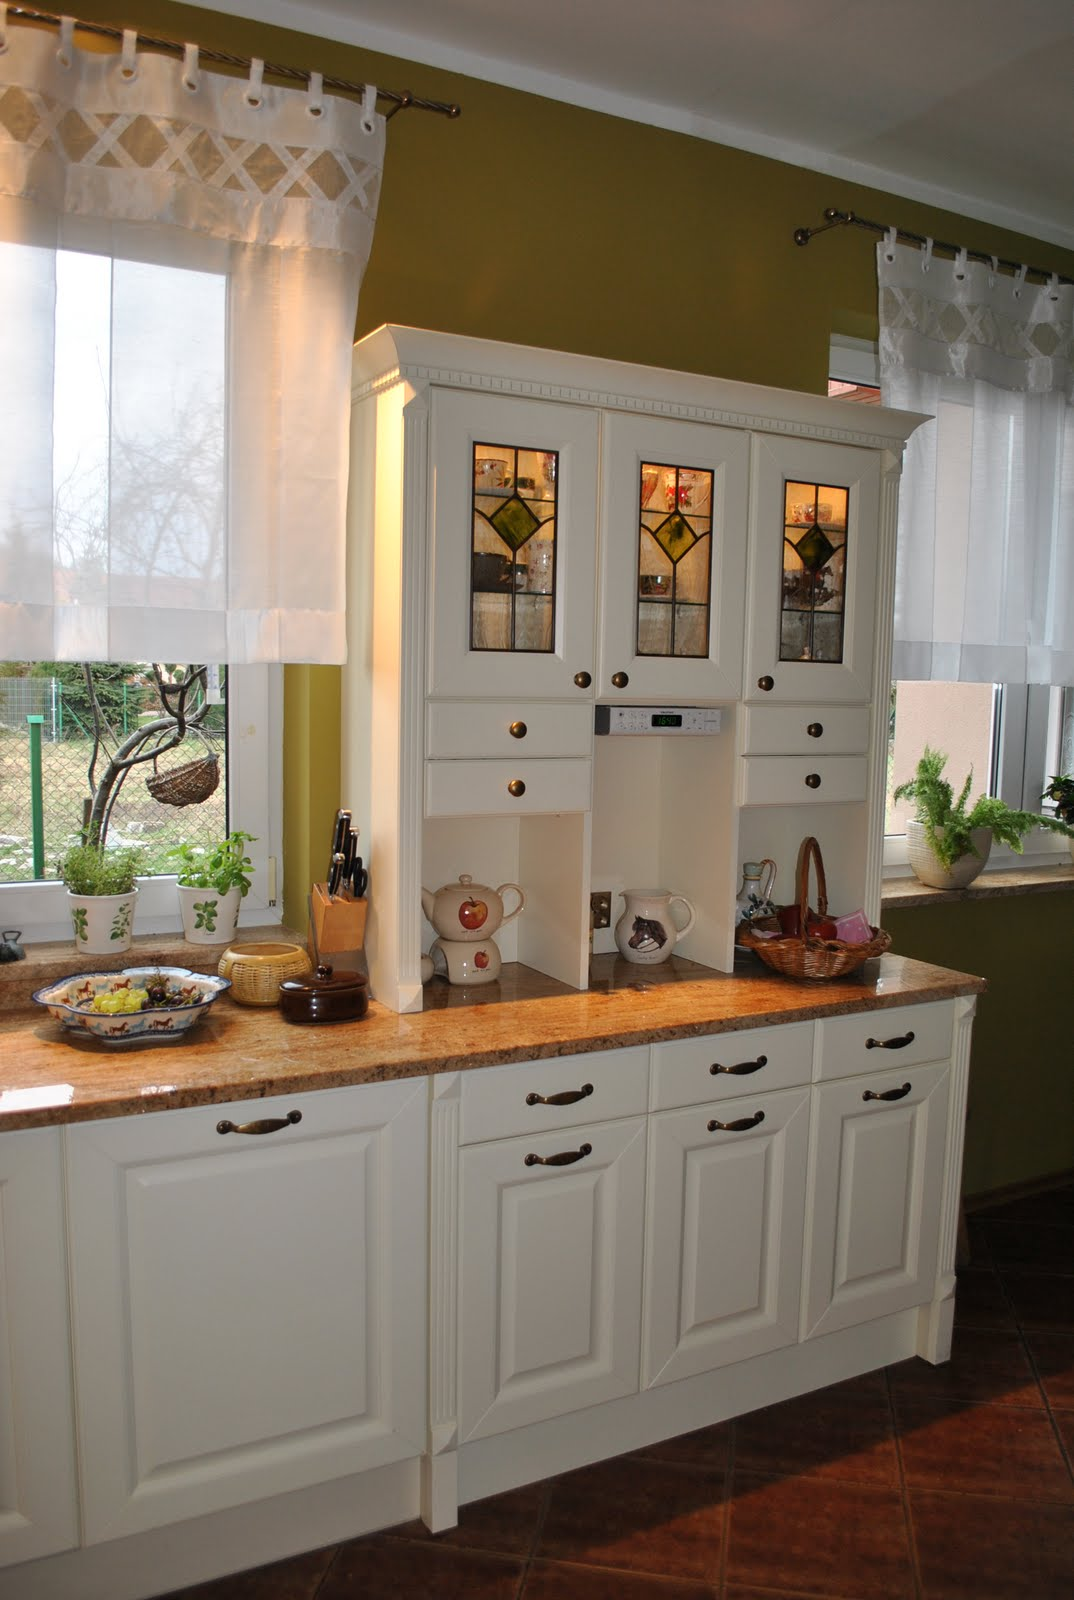 English country style kitchens the interior decorating rooms - Country style kitchens ...